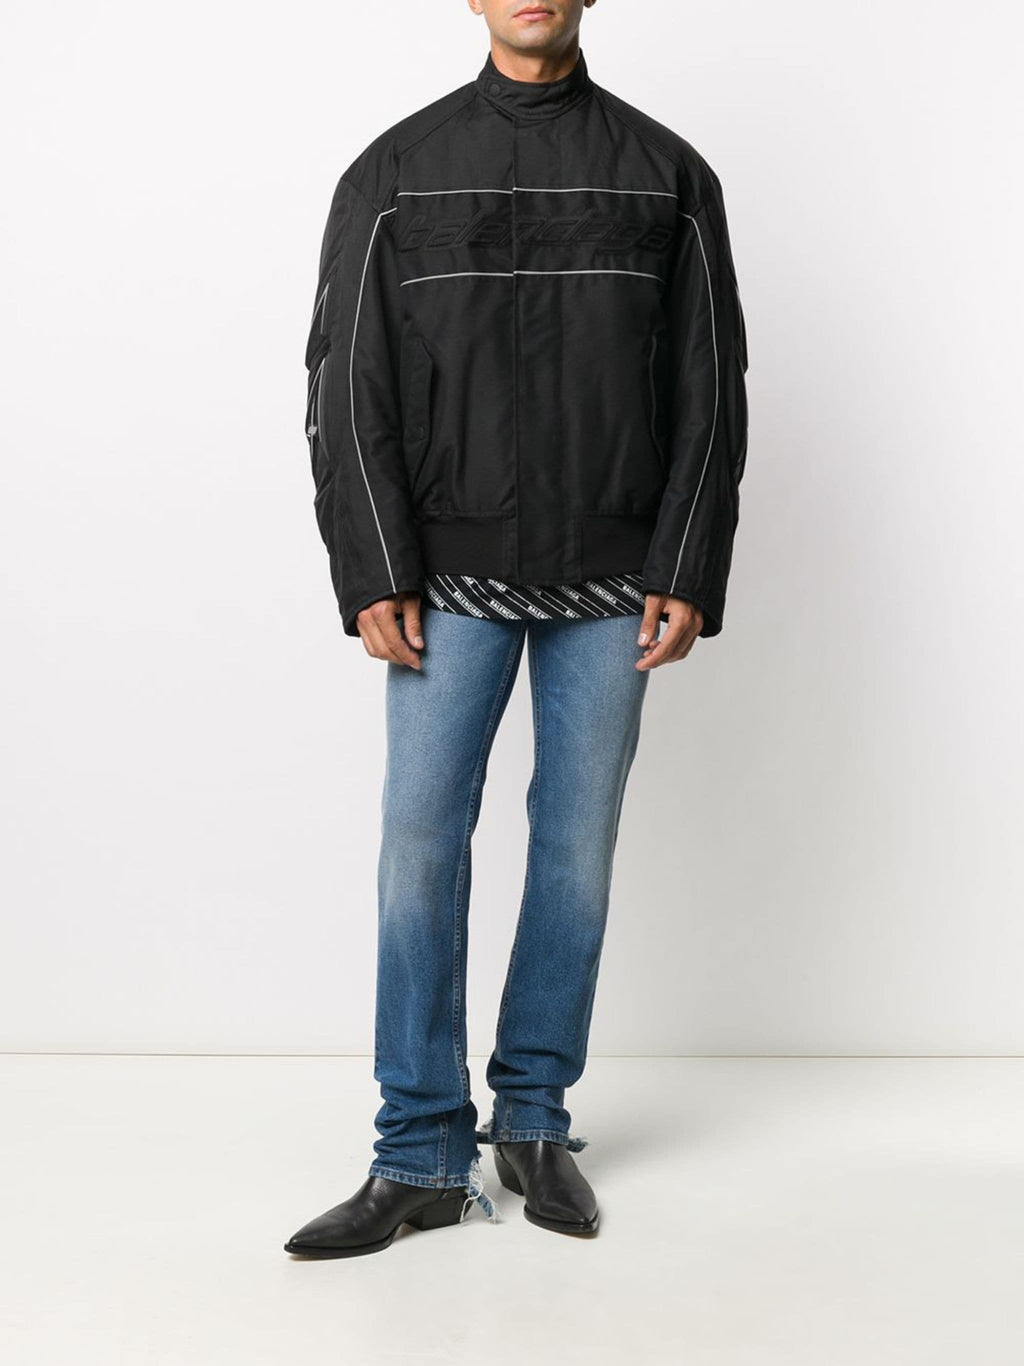 BALENCIAGA Racing Jacket Black - Maison De Fashion